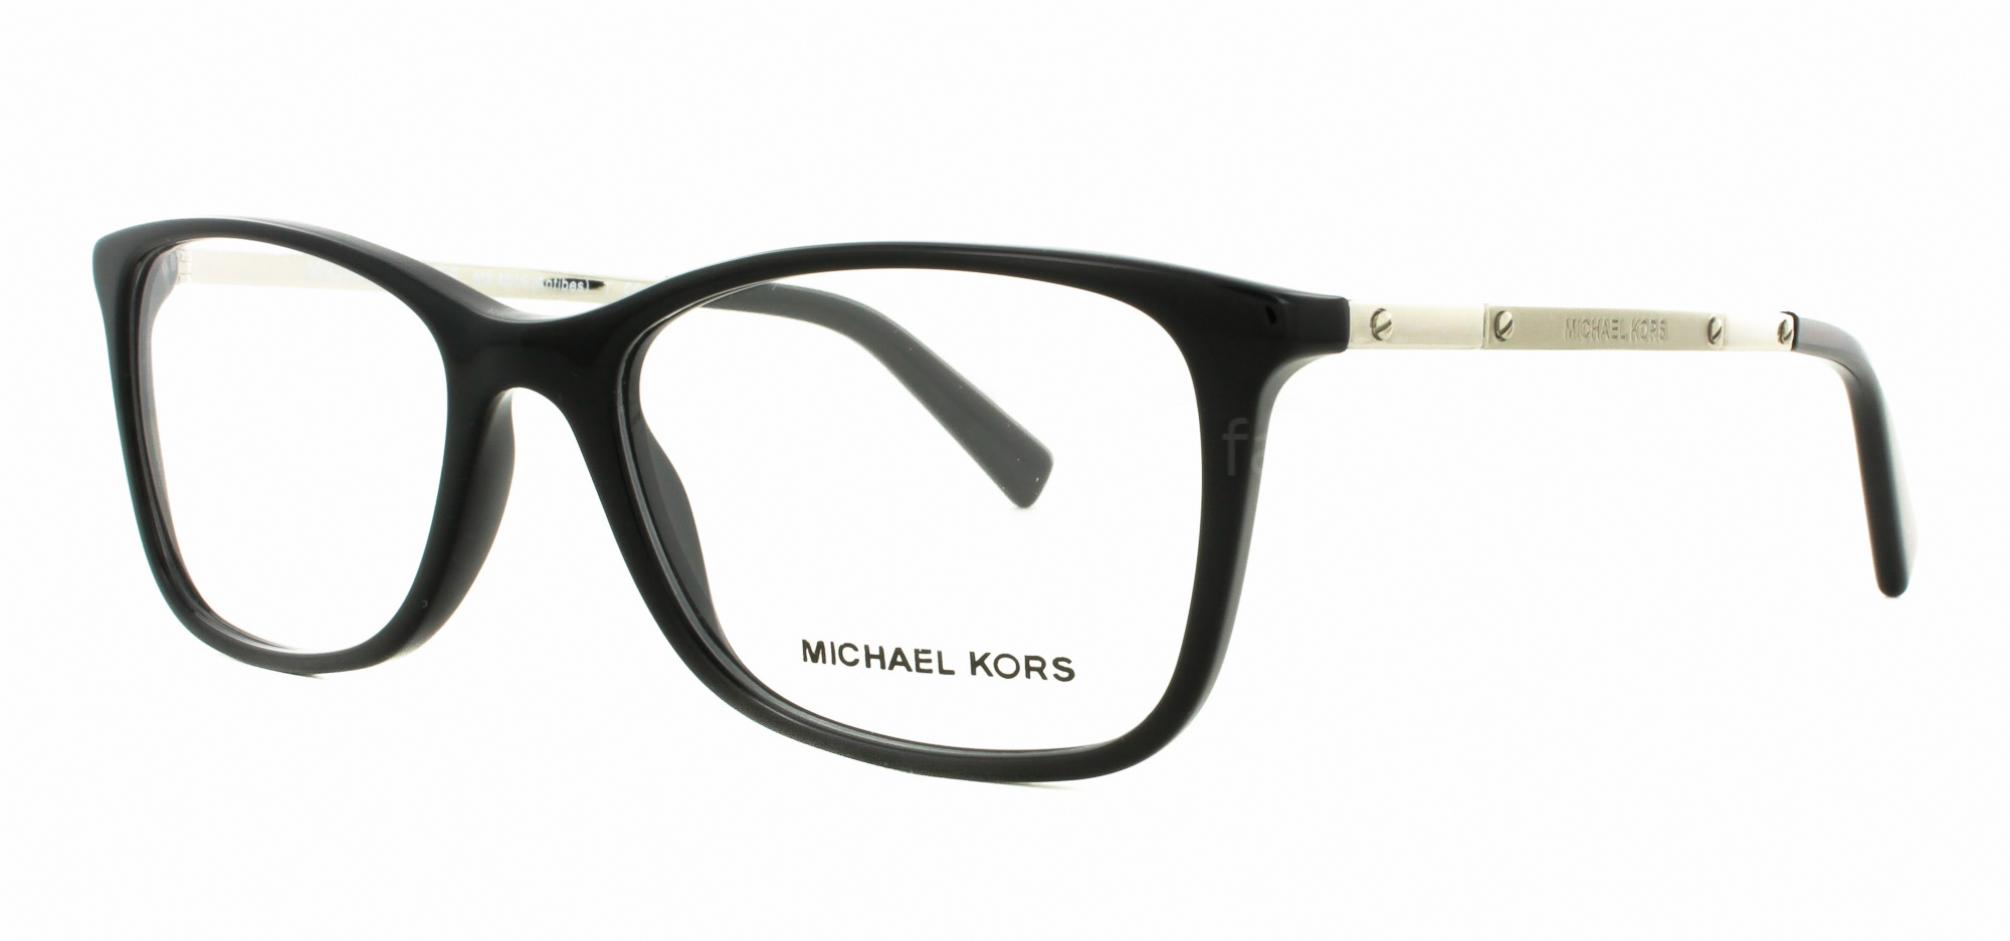 MICHAEL KORS ANTIBES 4016 in color 3005